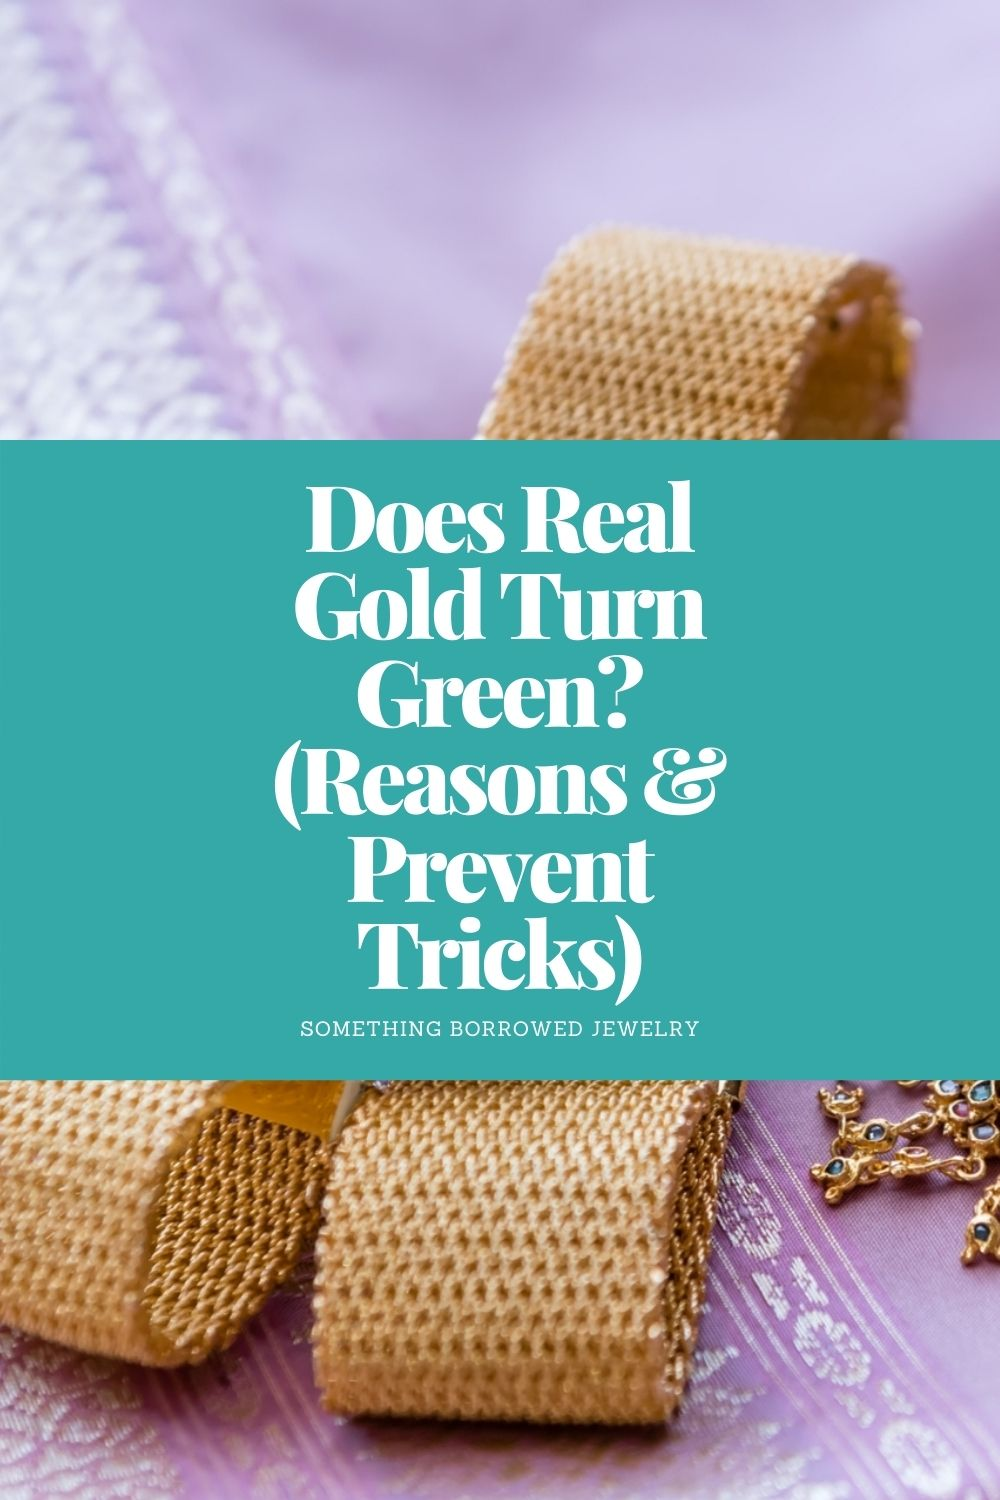 Does Real Gold Turn Green (Reasons & Prevent Tricks) pin 2